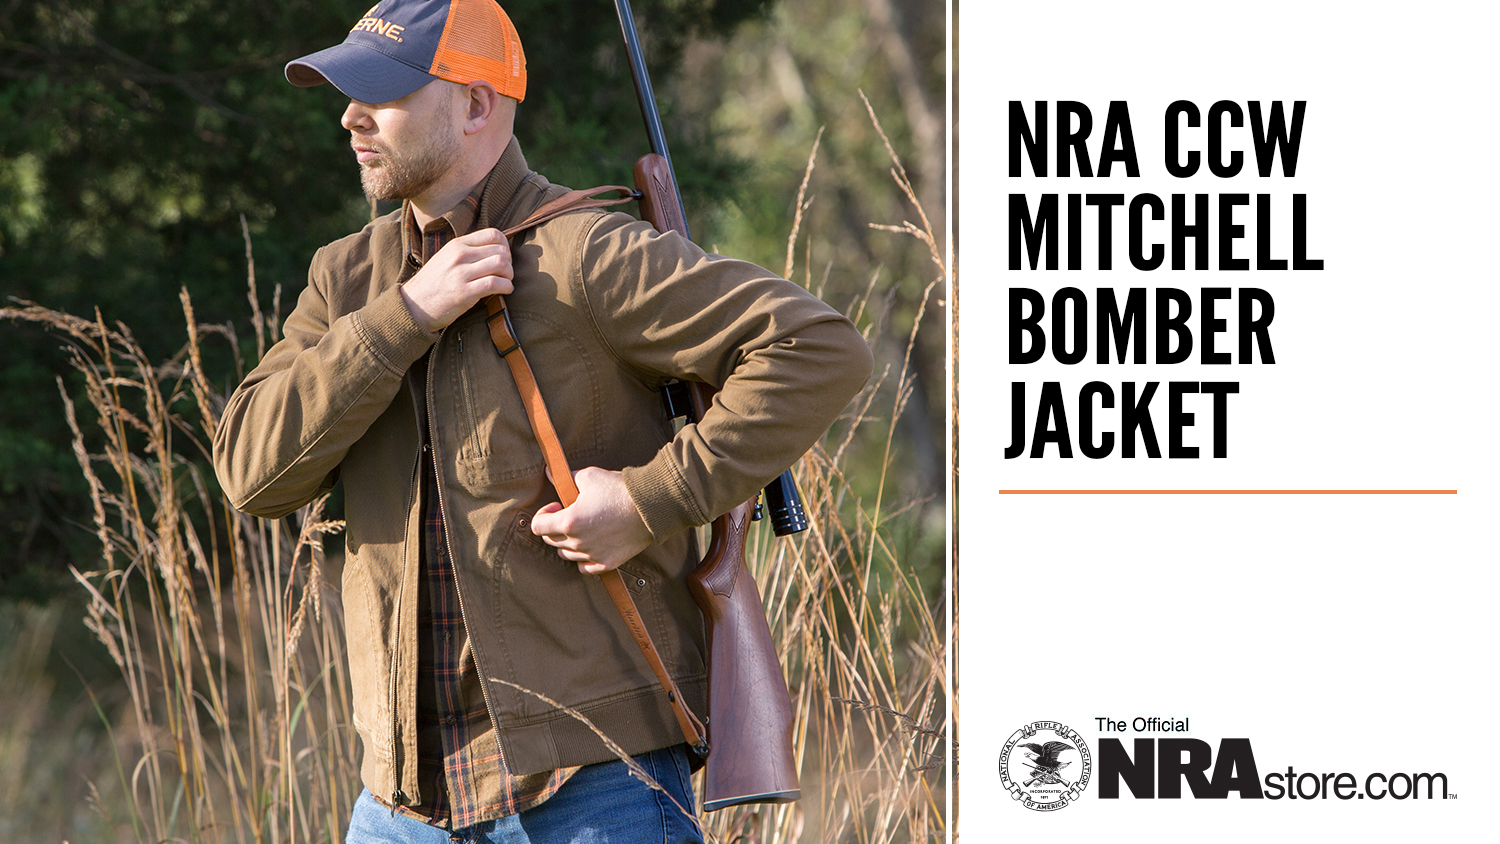 NRAstore Highlight: NRA CCW Mitchell Bomber Jacket